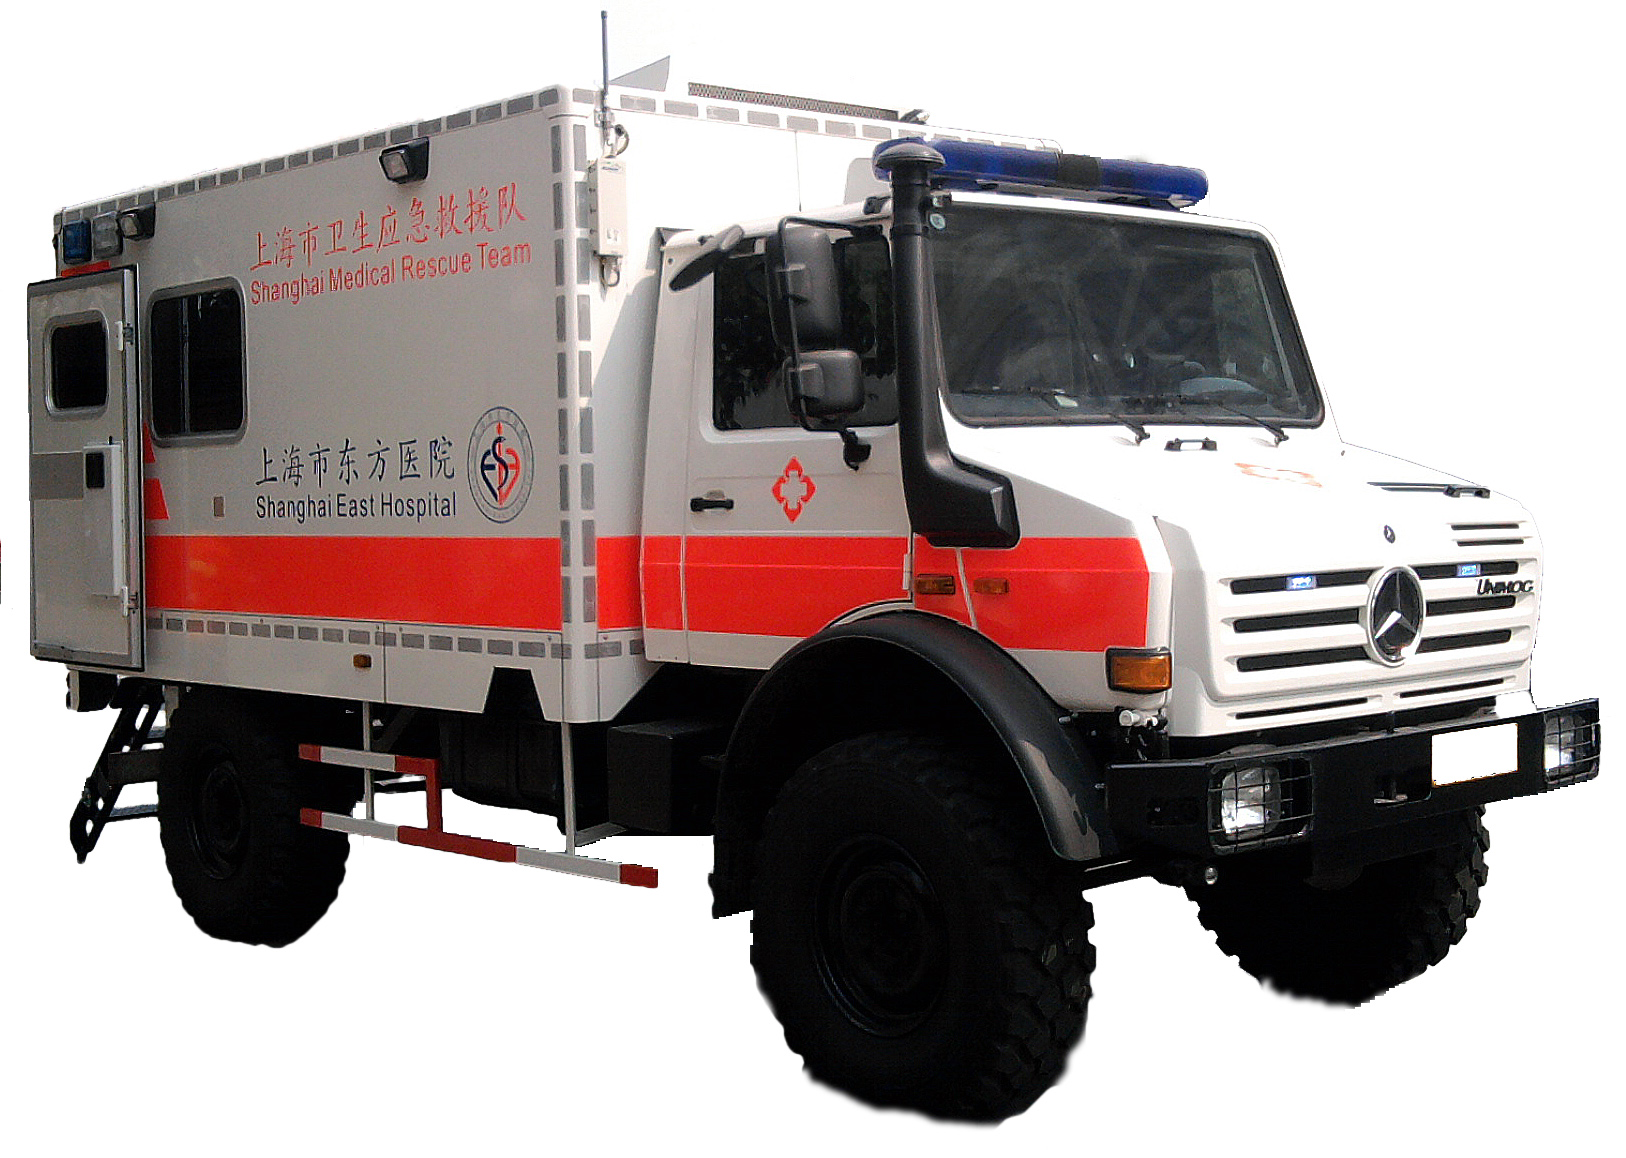 Shanghai East Hospital Disaster Response Unit